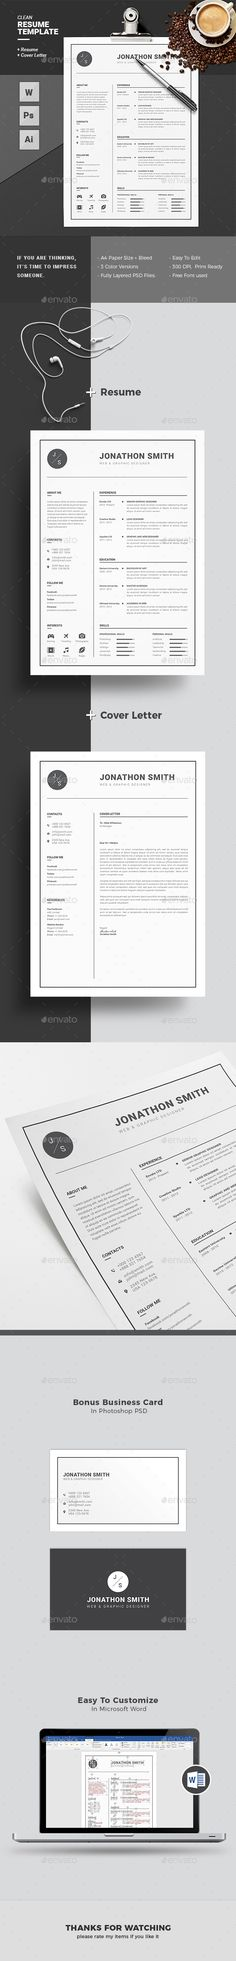 Buy Resume by Diverter on GraphicRiver. Professional Resume / CV Template with super modern and professional look. Elegant page designs are easy to use and c. Simple Resume Template, Resume Design Template, Flyer Design Templates, Cv Template, Creative Resume Templates, Creative Cv, Job Resume, Resume Ideas, Cv Inspiration